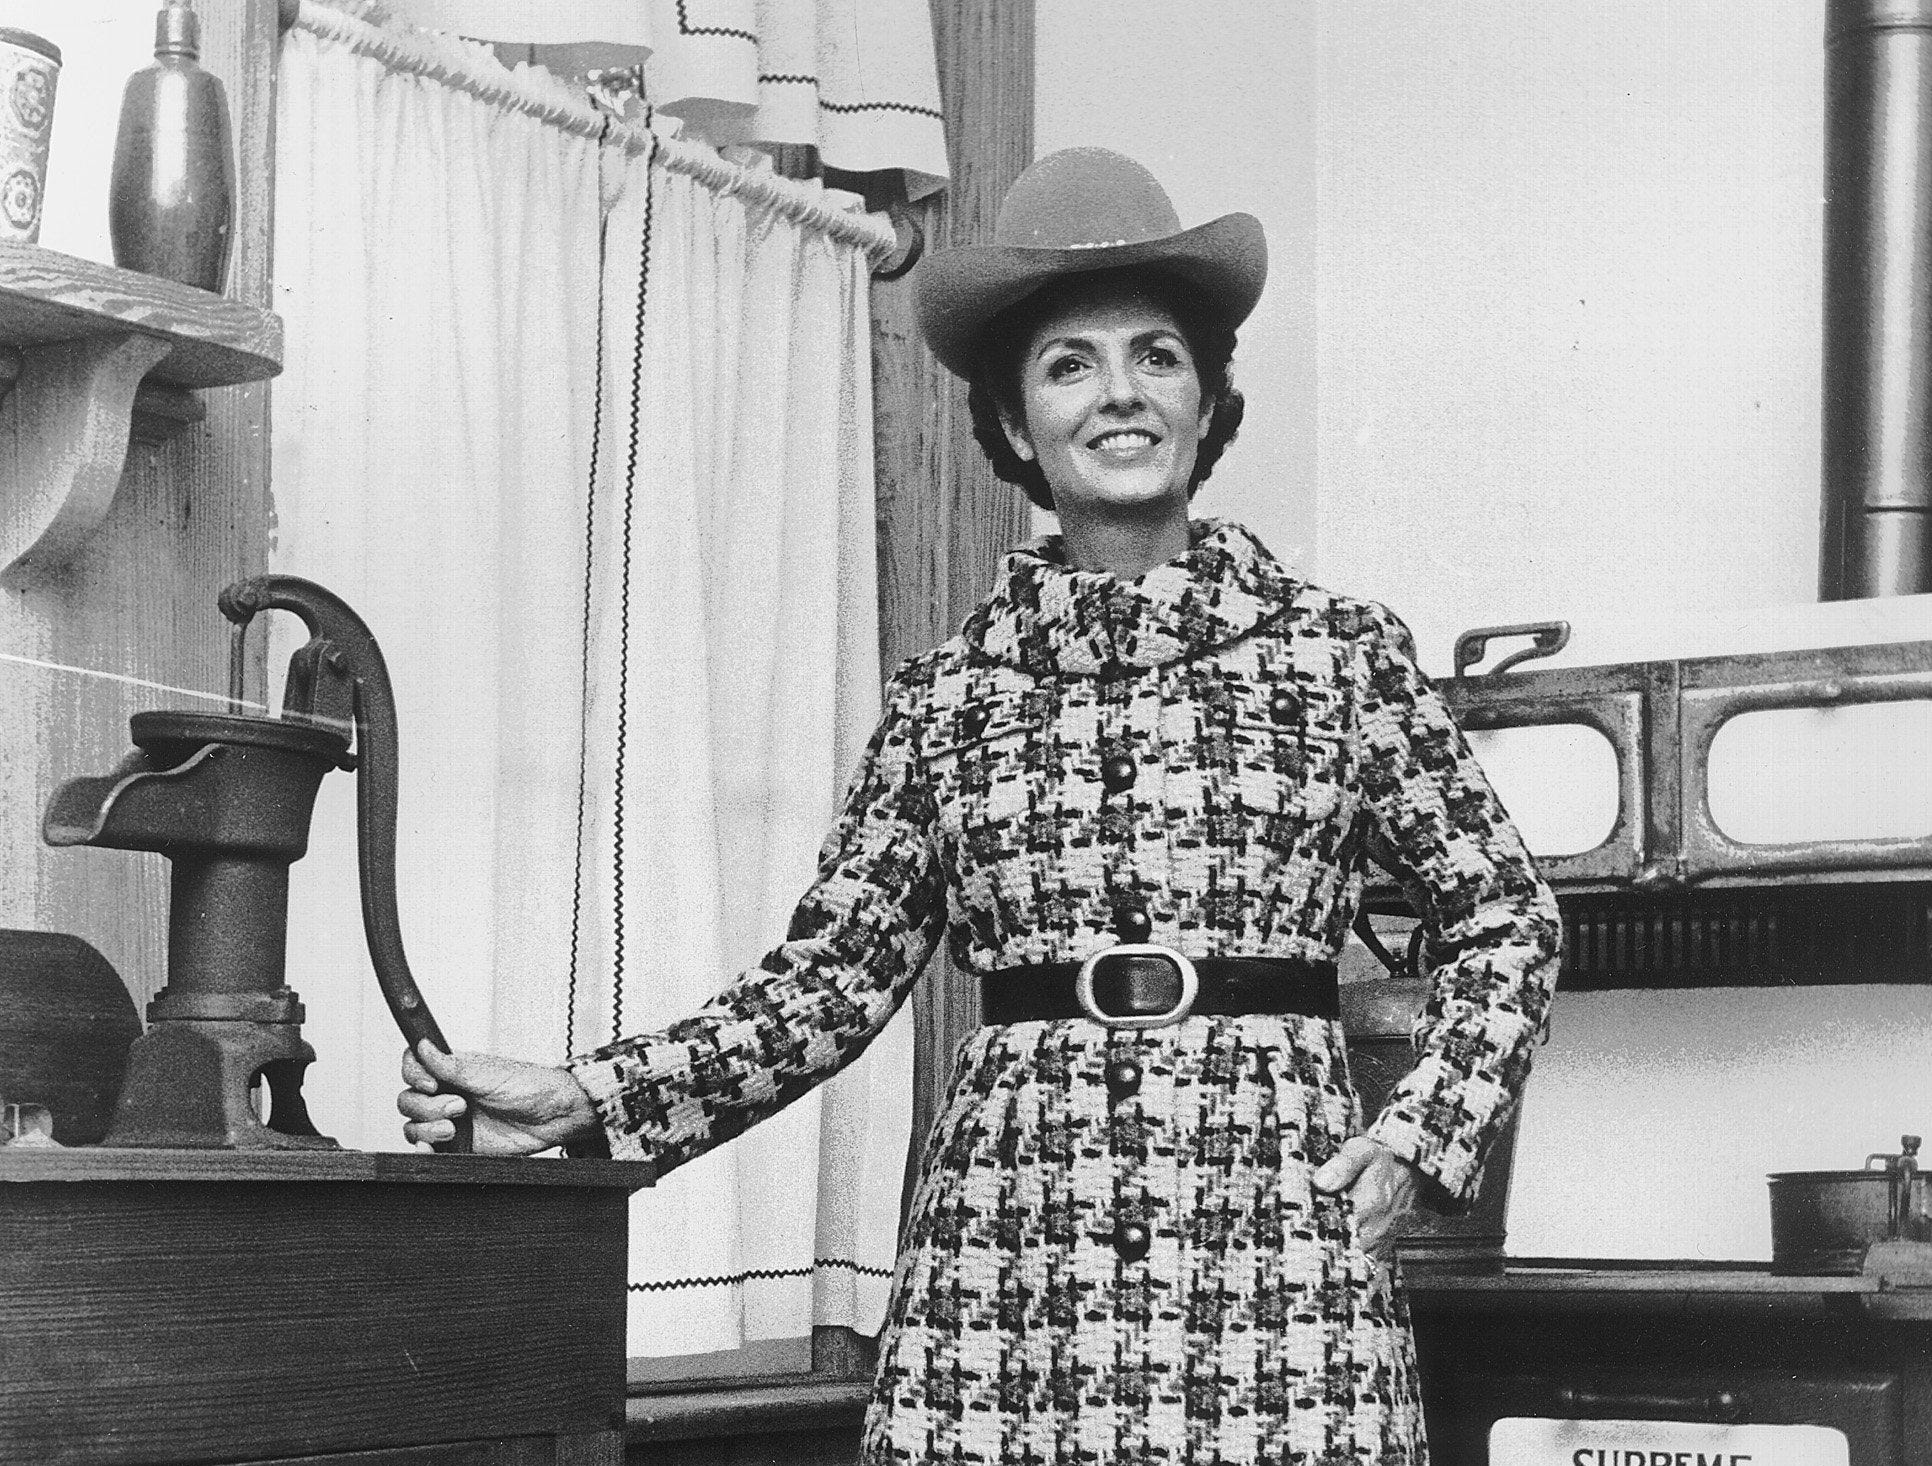 Davidow executes style with a fine needle. This coat of gold and black Scottish plaid with its dress of black jersey is worn by Mrs. Leonard D. Pierotti at the Fontaine House on Sept. 4, 1970. The costume will be shown at Phil A. Halle during Memphis Fashion Week.